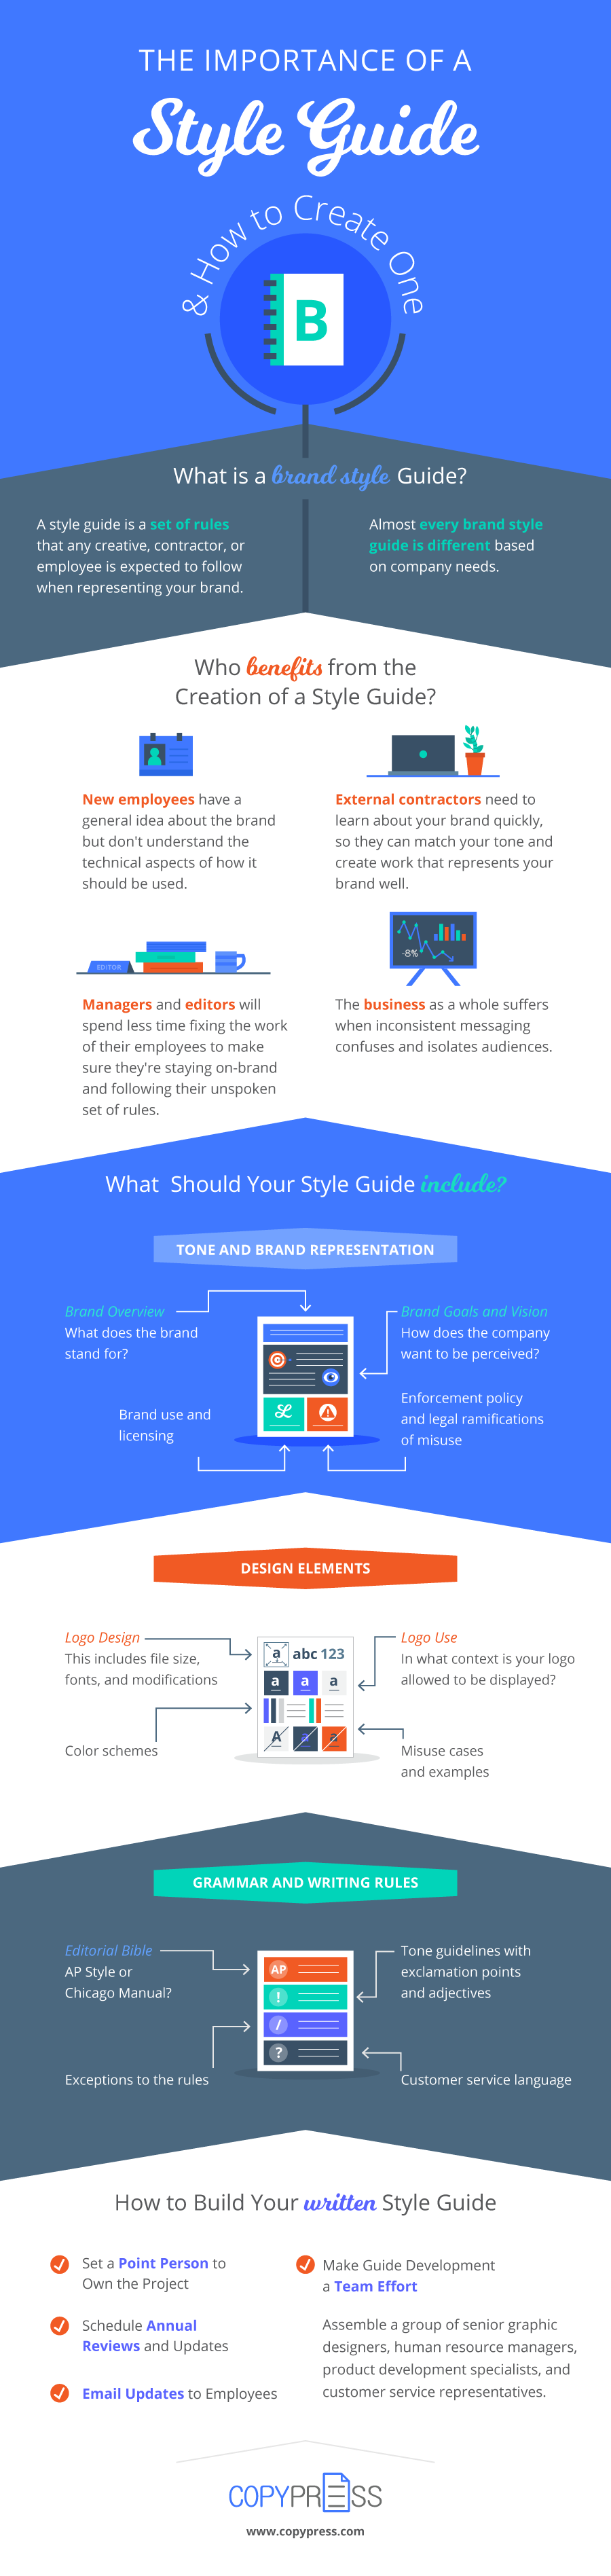 Infographic: The importance of a Style Guide.